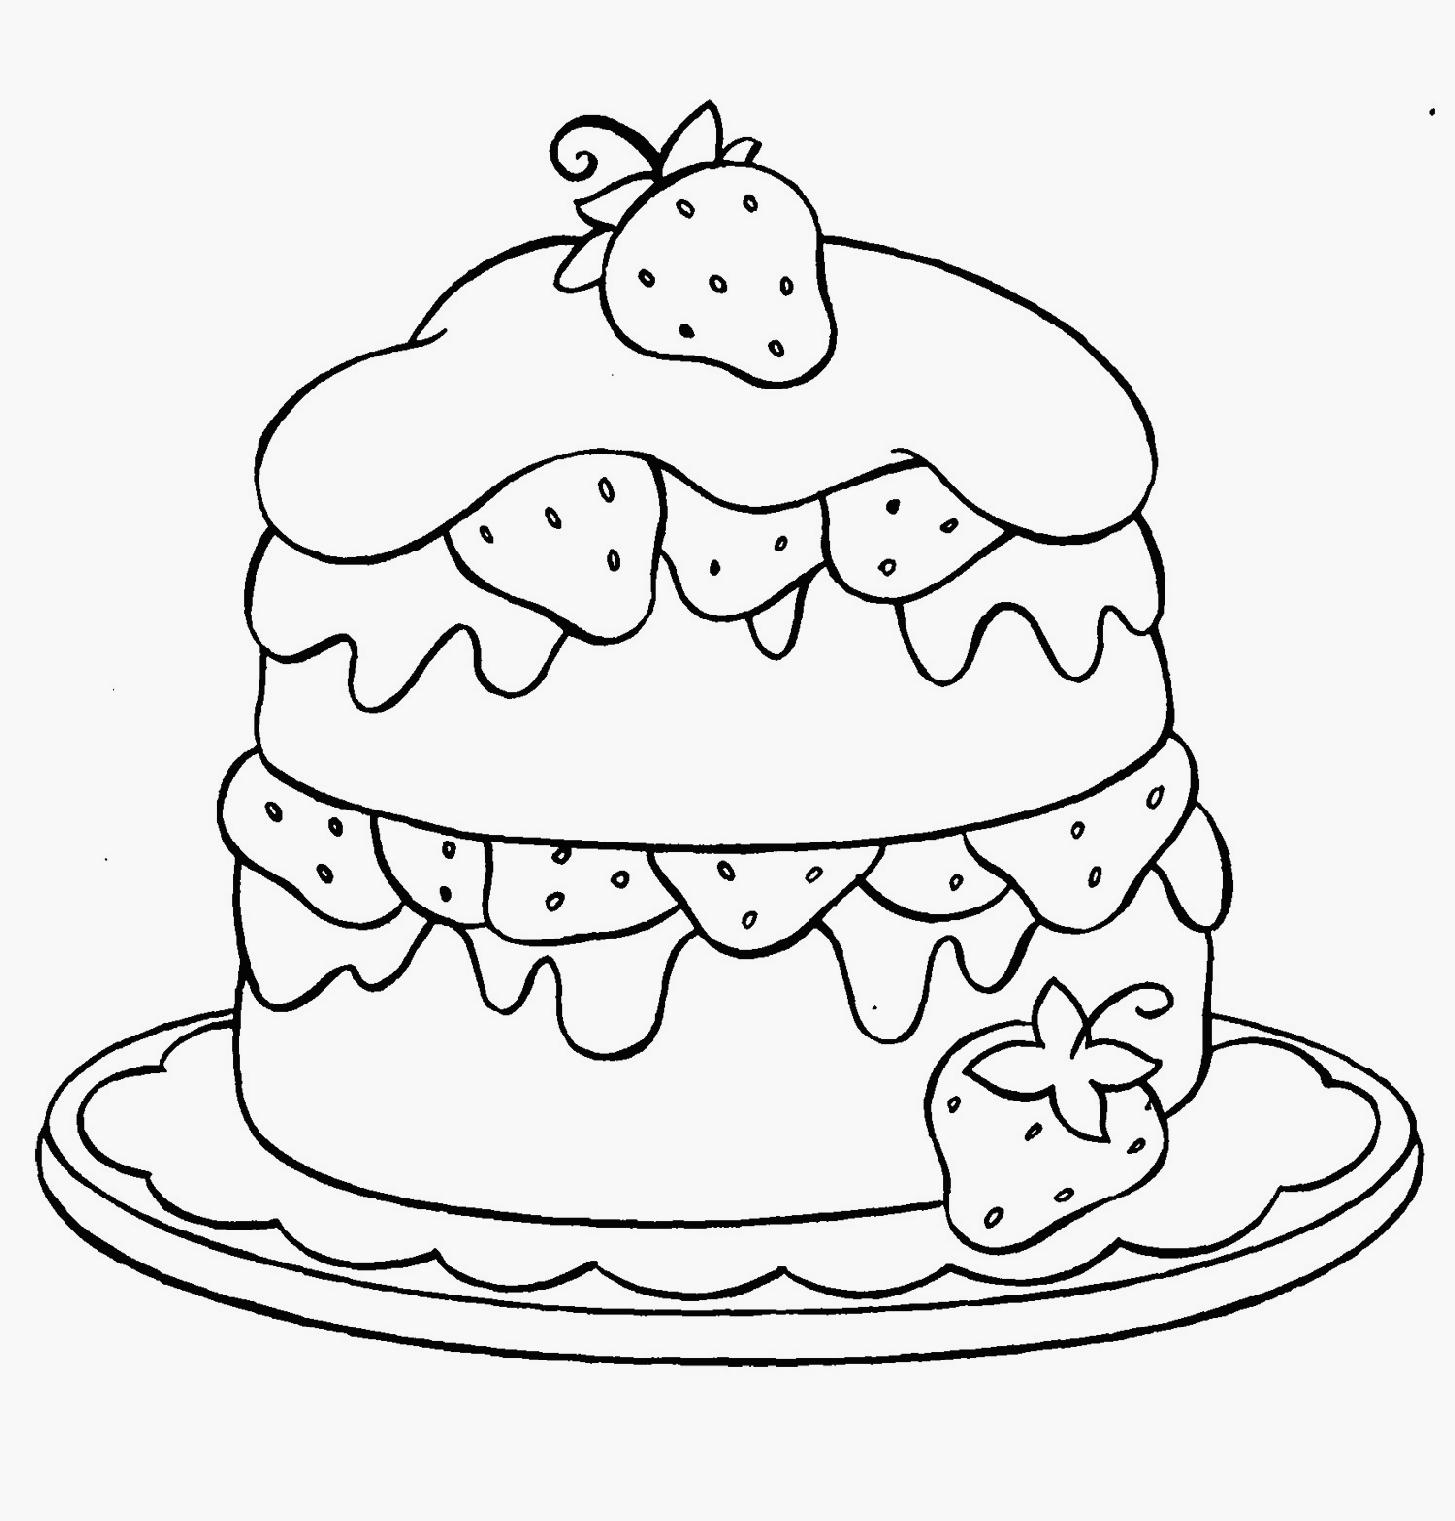 1455x1521 If You Give A Cat A Cupcake Coloring Page Coloring Other